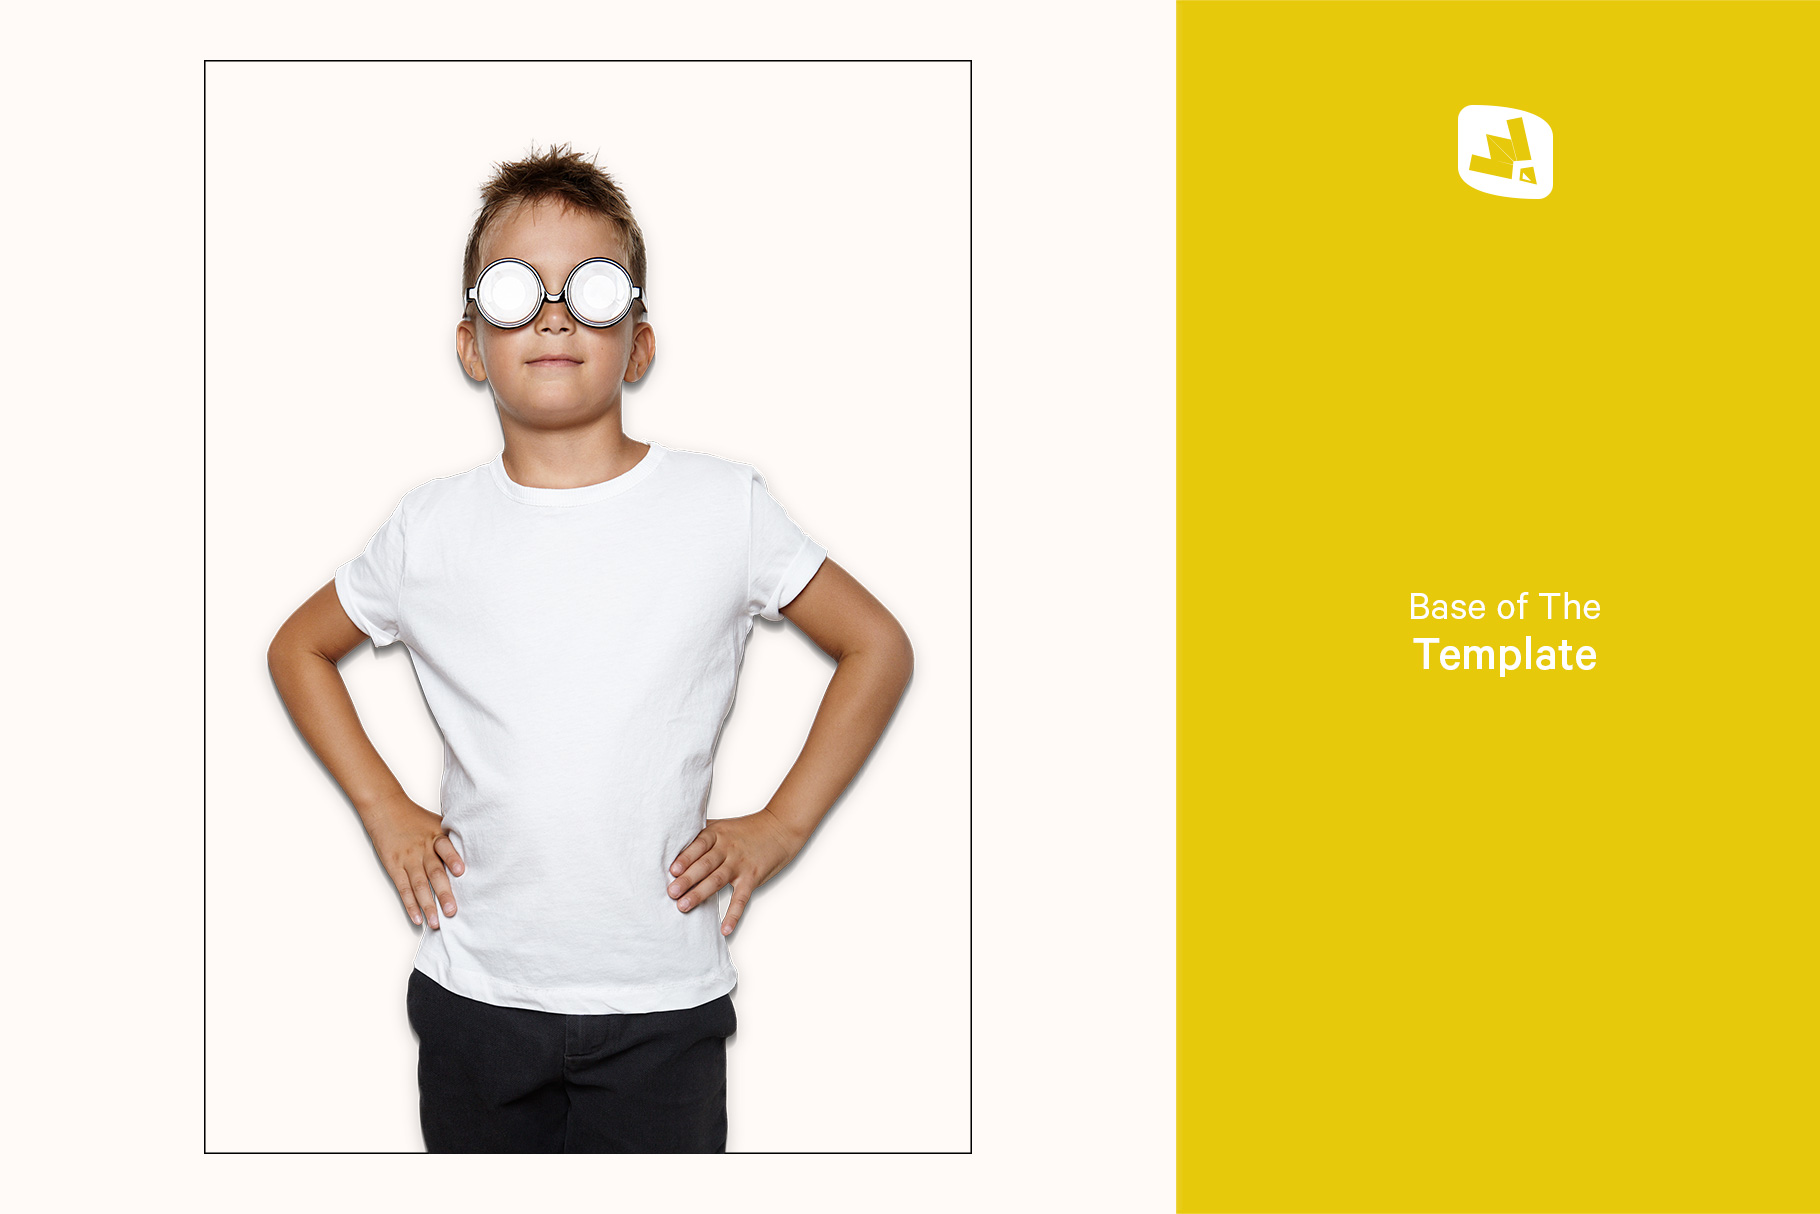 base image of the kid's everyday outfit mockup with sunglasses